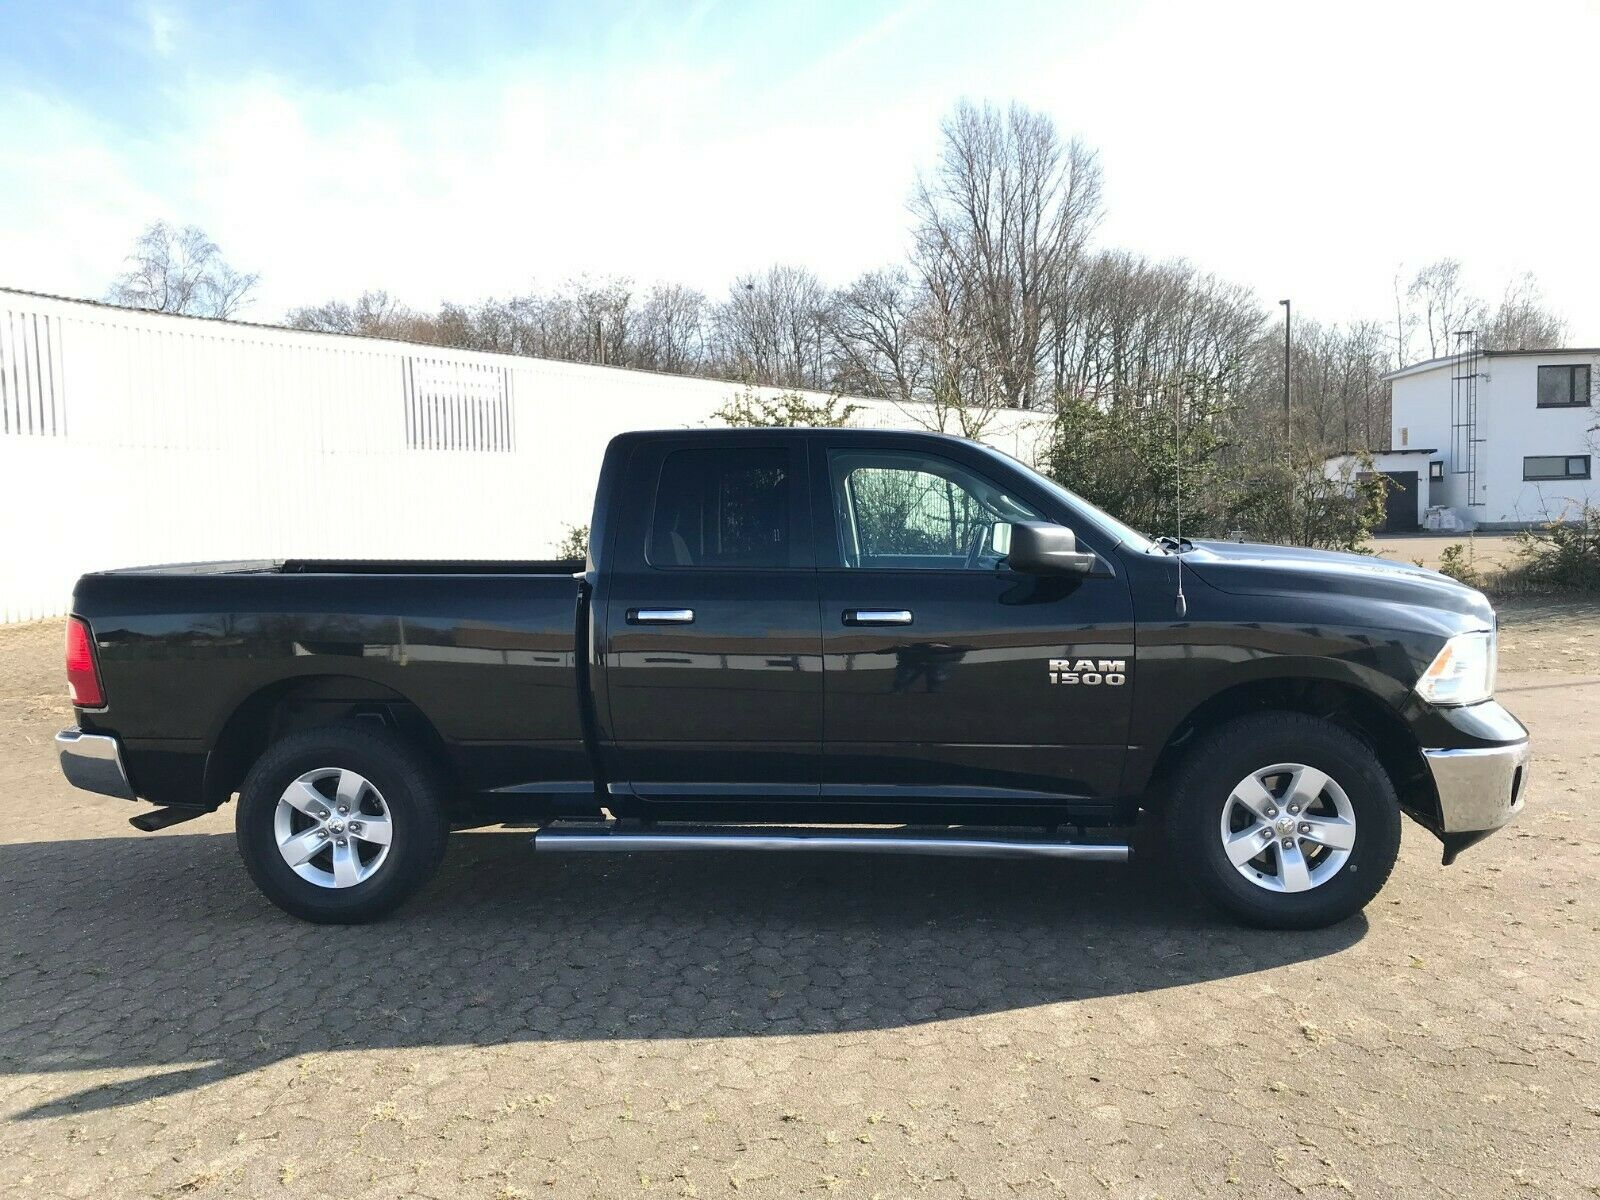 DODGE RAM 1500 Doka 3.6L LPG GAS 8Gang 4X4